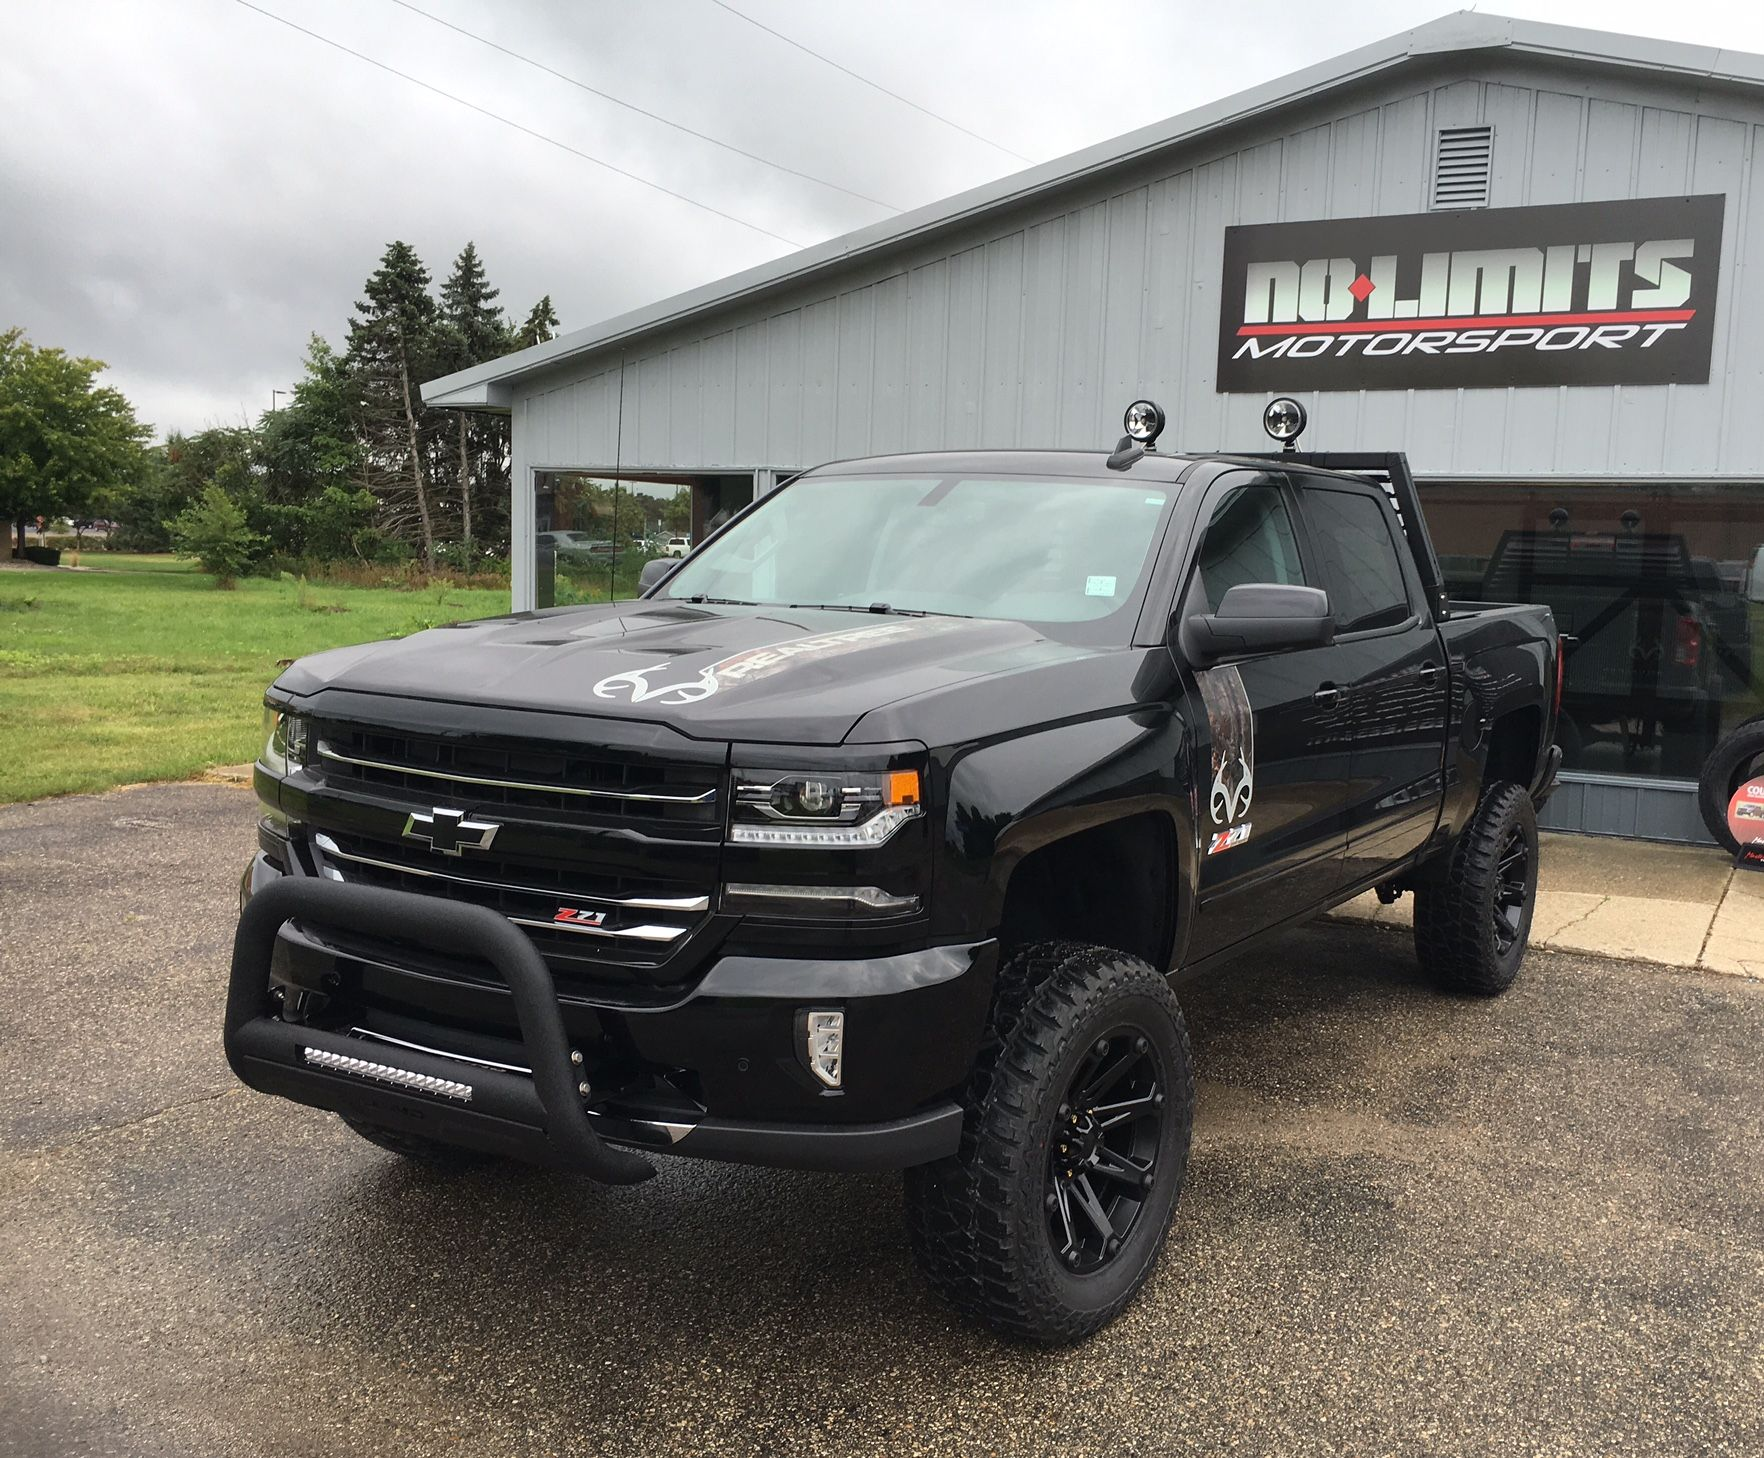 2016 chevy silverado realtree edition with 6 zone suspension 20 ballistic jester wheels 35. Black Bedroom Furniture Sets. Home Design Ideas